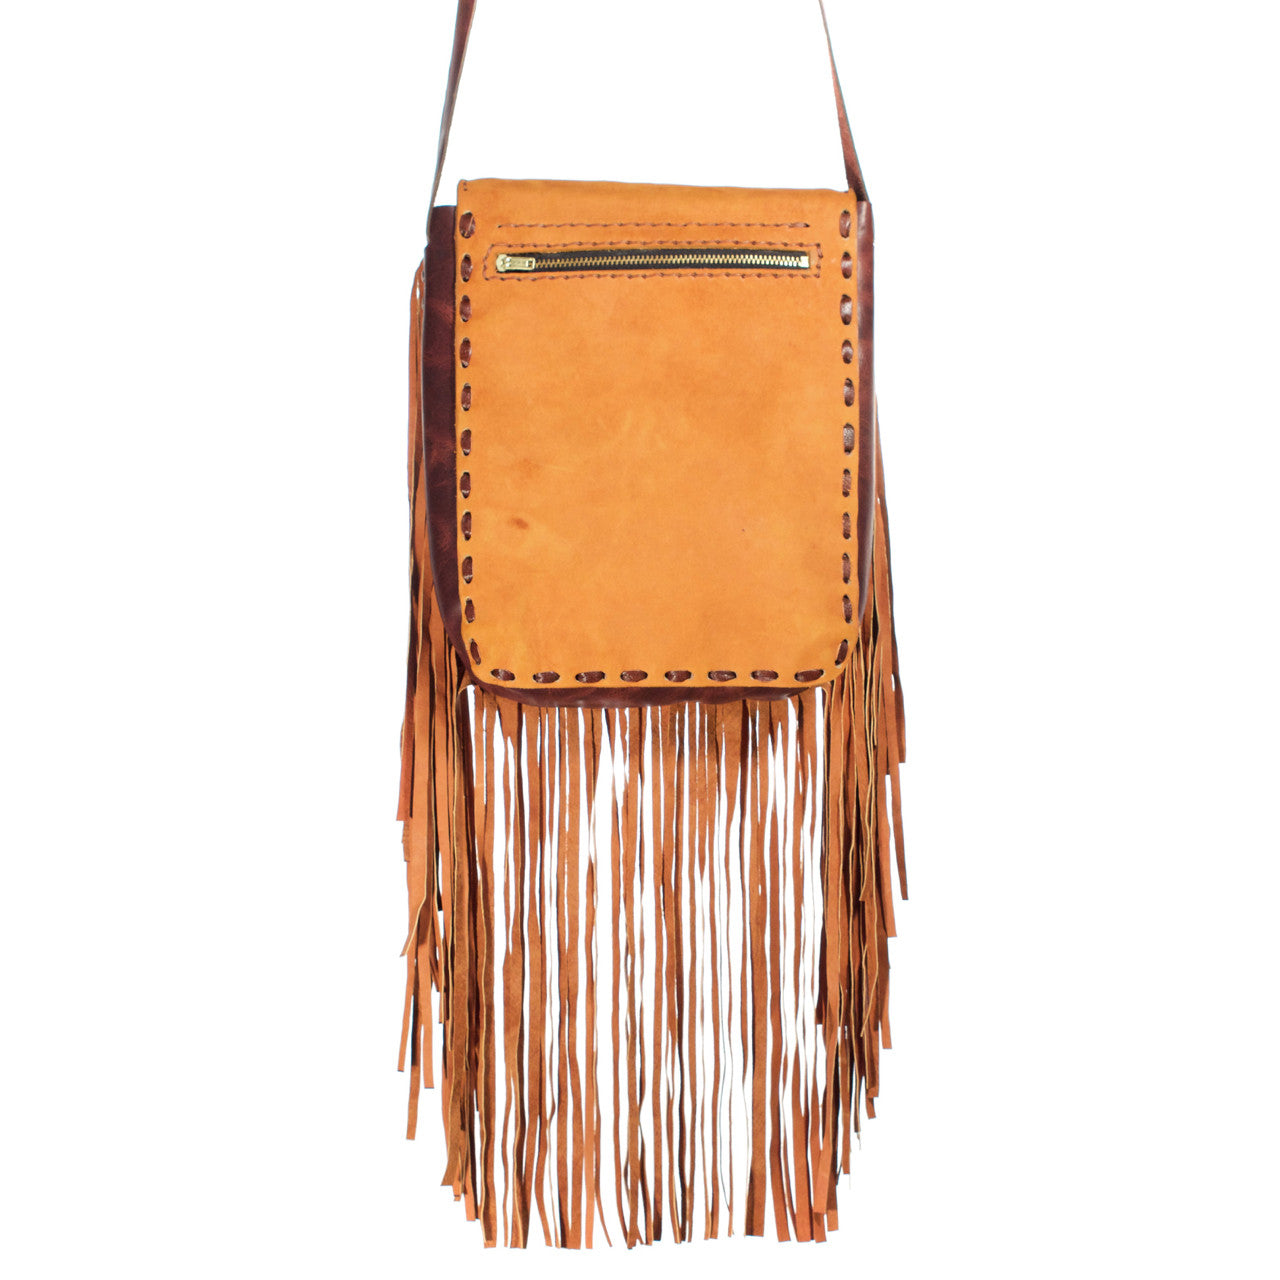 Chi Chi Fringe Bag - Tan 03  Shoulder Bag Pink Diamond - Cielo Collective handmade Mexico Guatemala